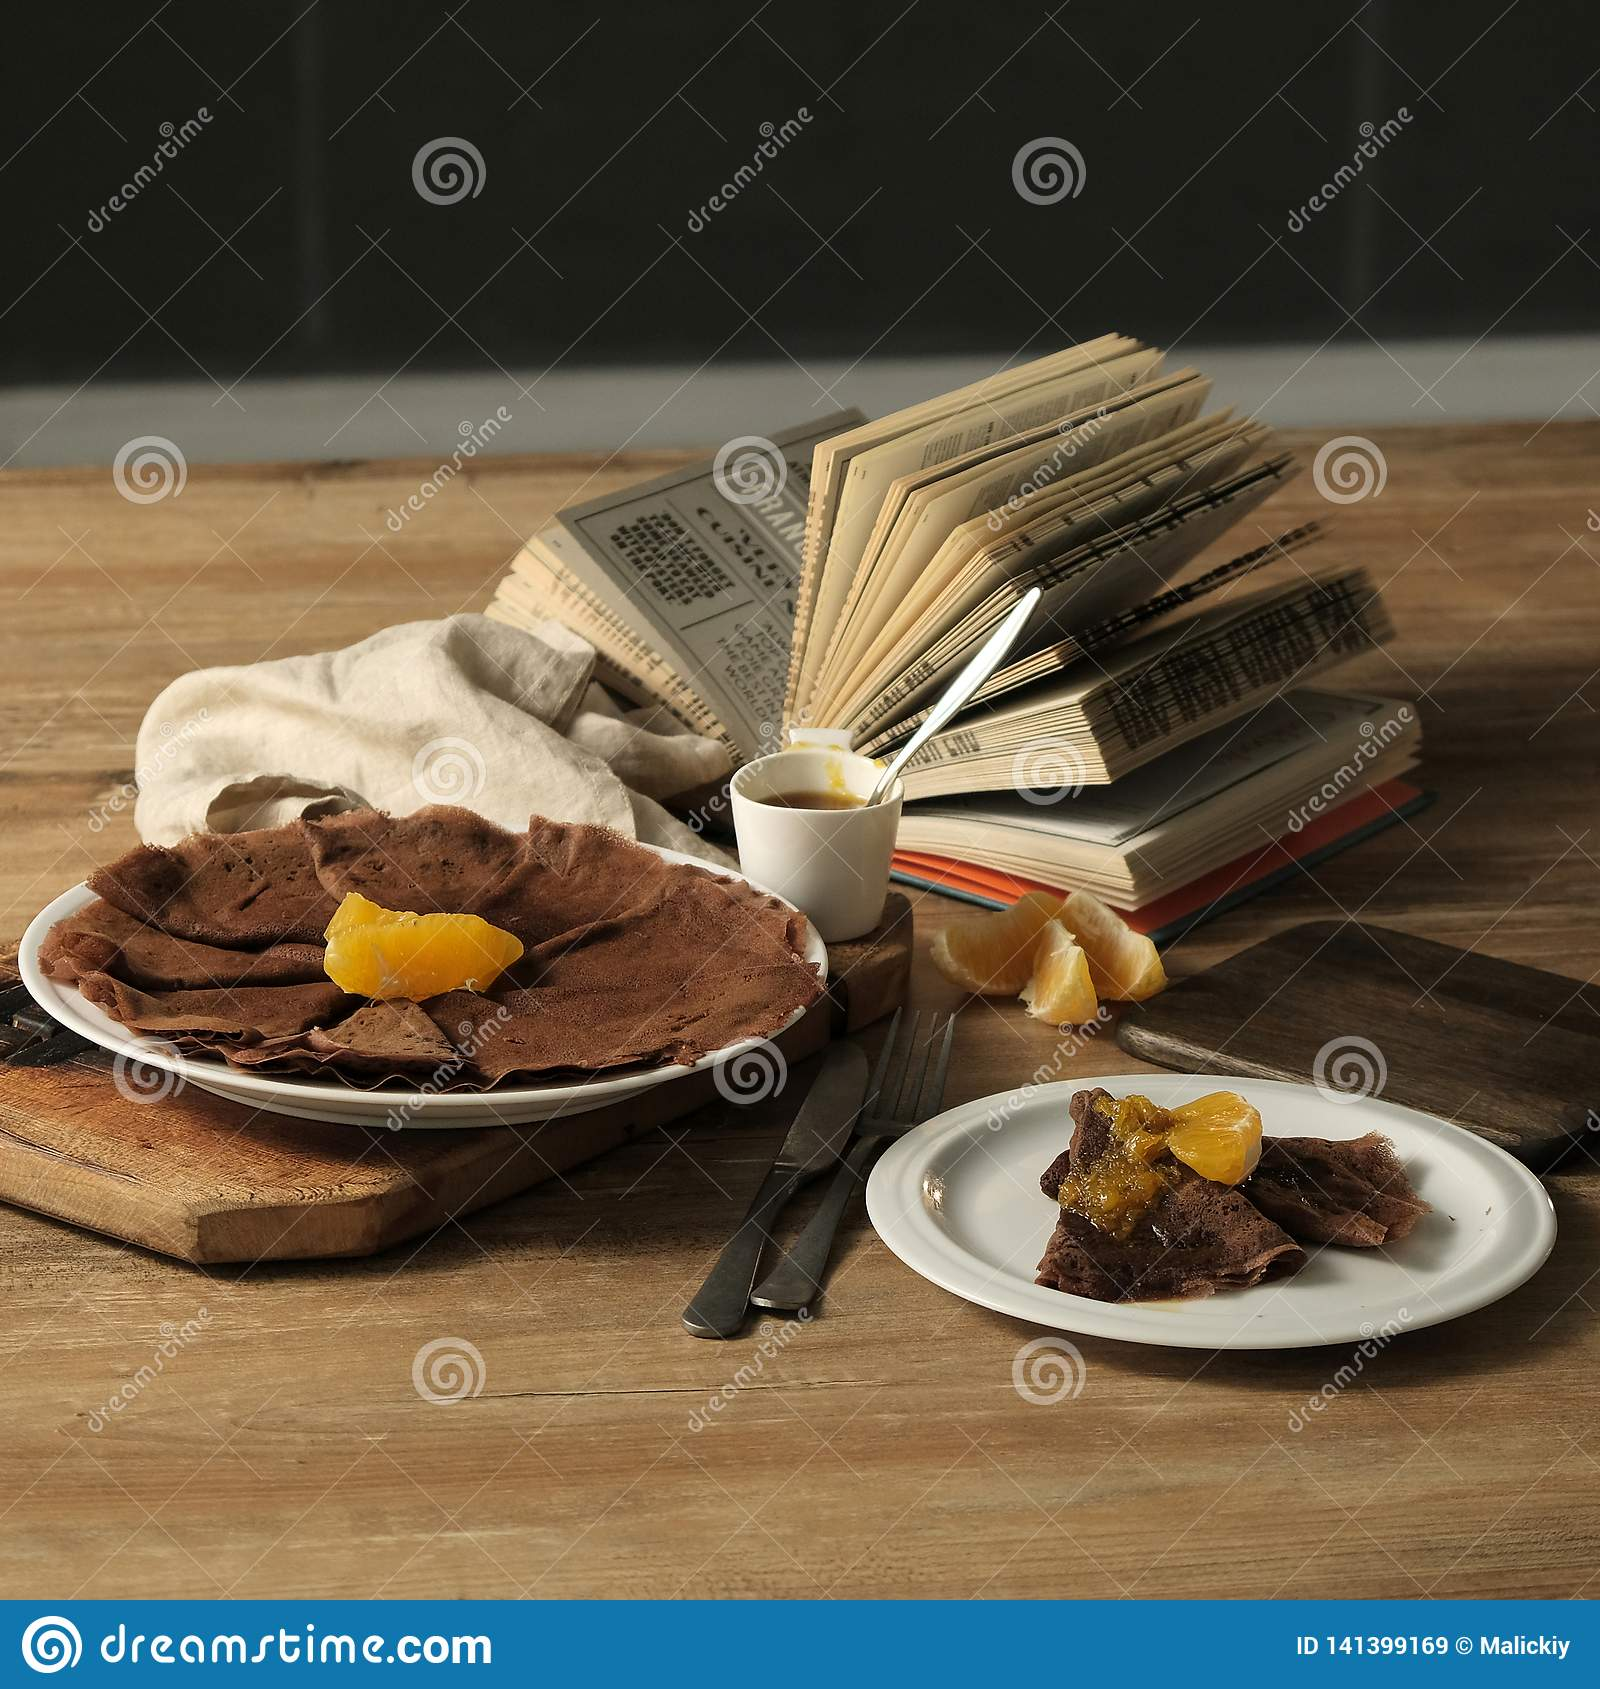 Food Photography Chocolate Pancakes With Orange Jam On A Wooden Plate Stock Image Image Of Vanilla Fruits 141399169